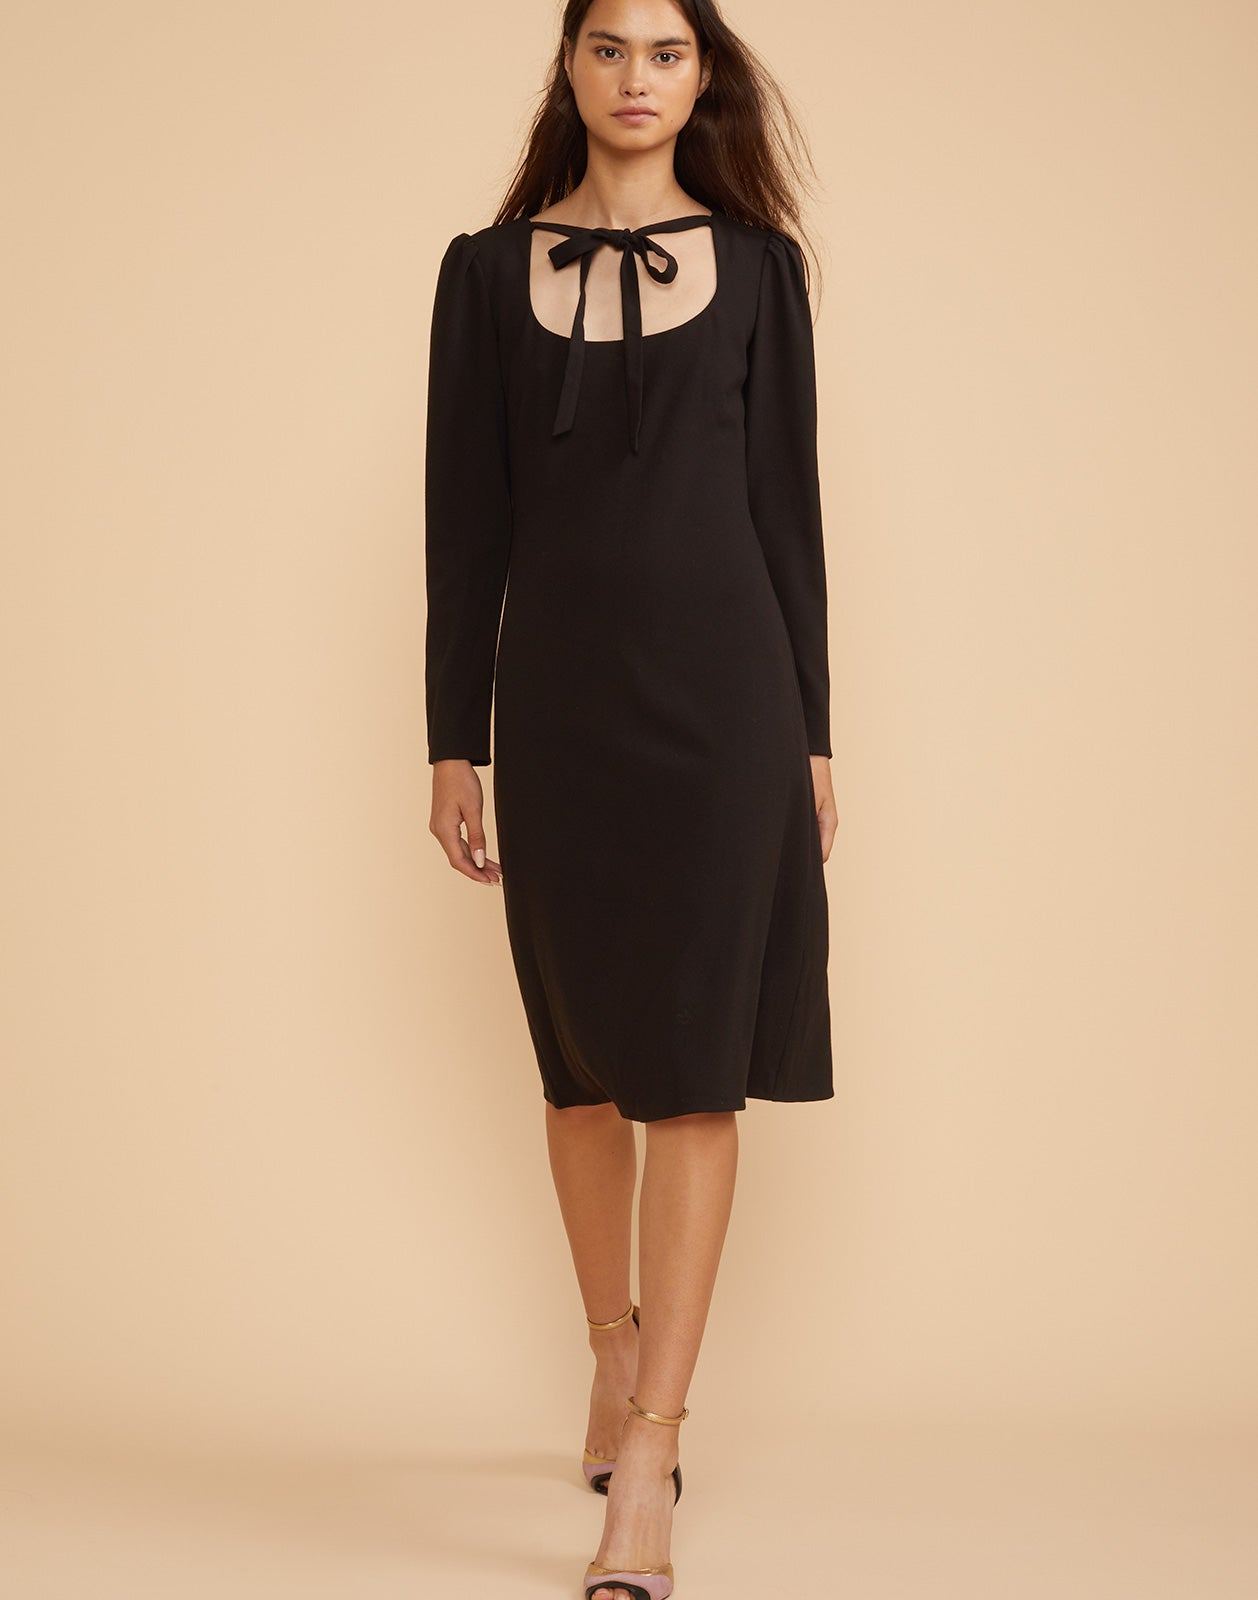 Full front view of the Waverly stretch crepe dress in black.